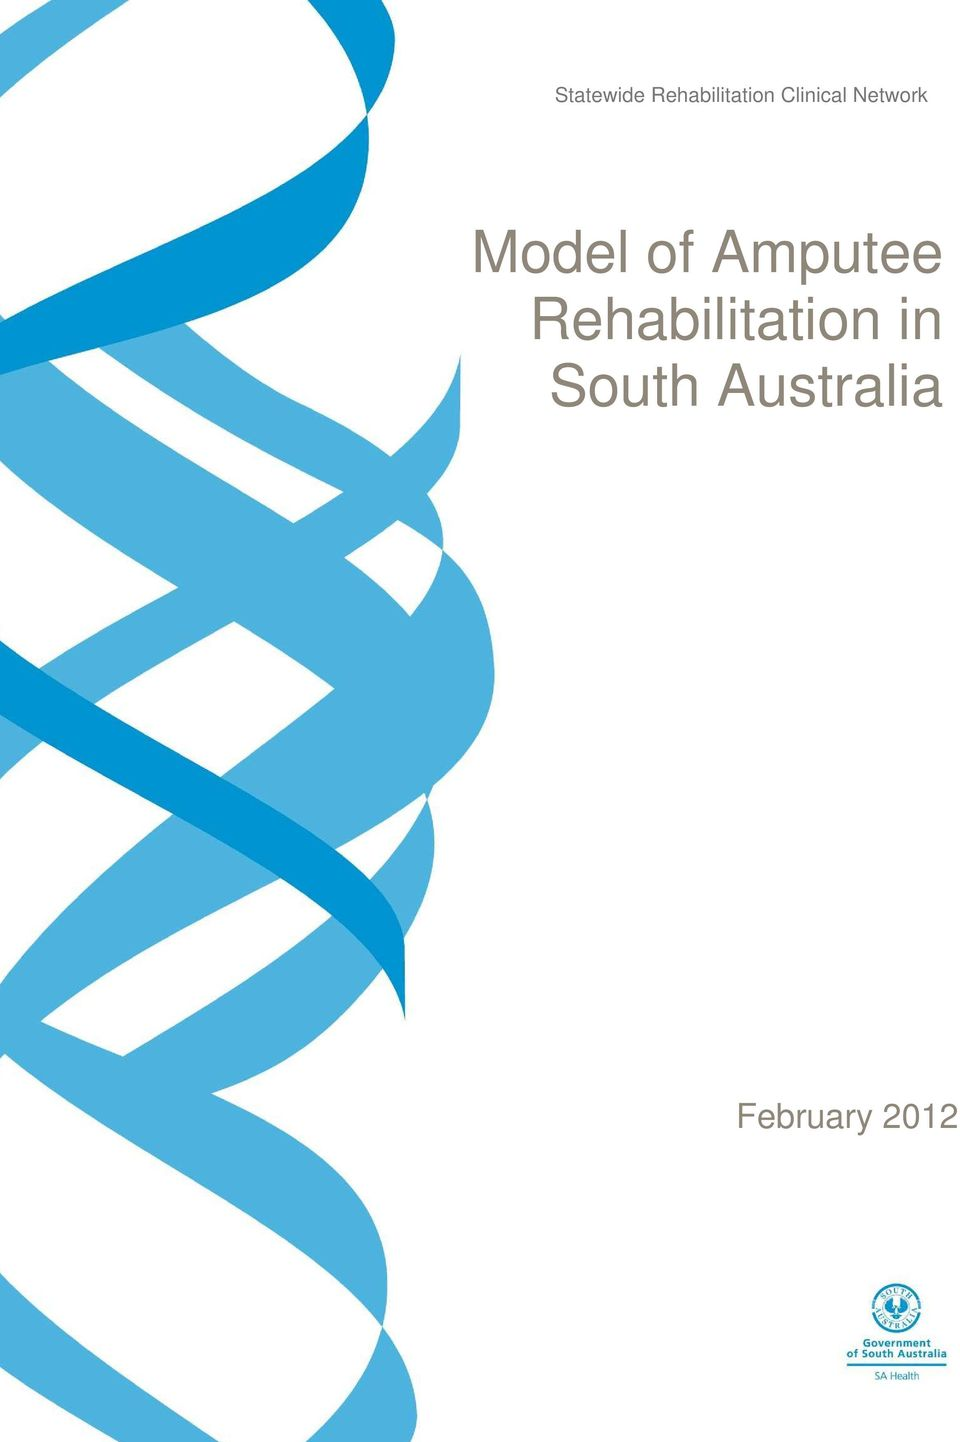 Amputee Rehabilitation in